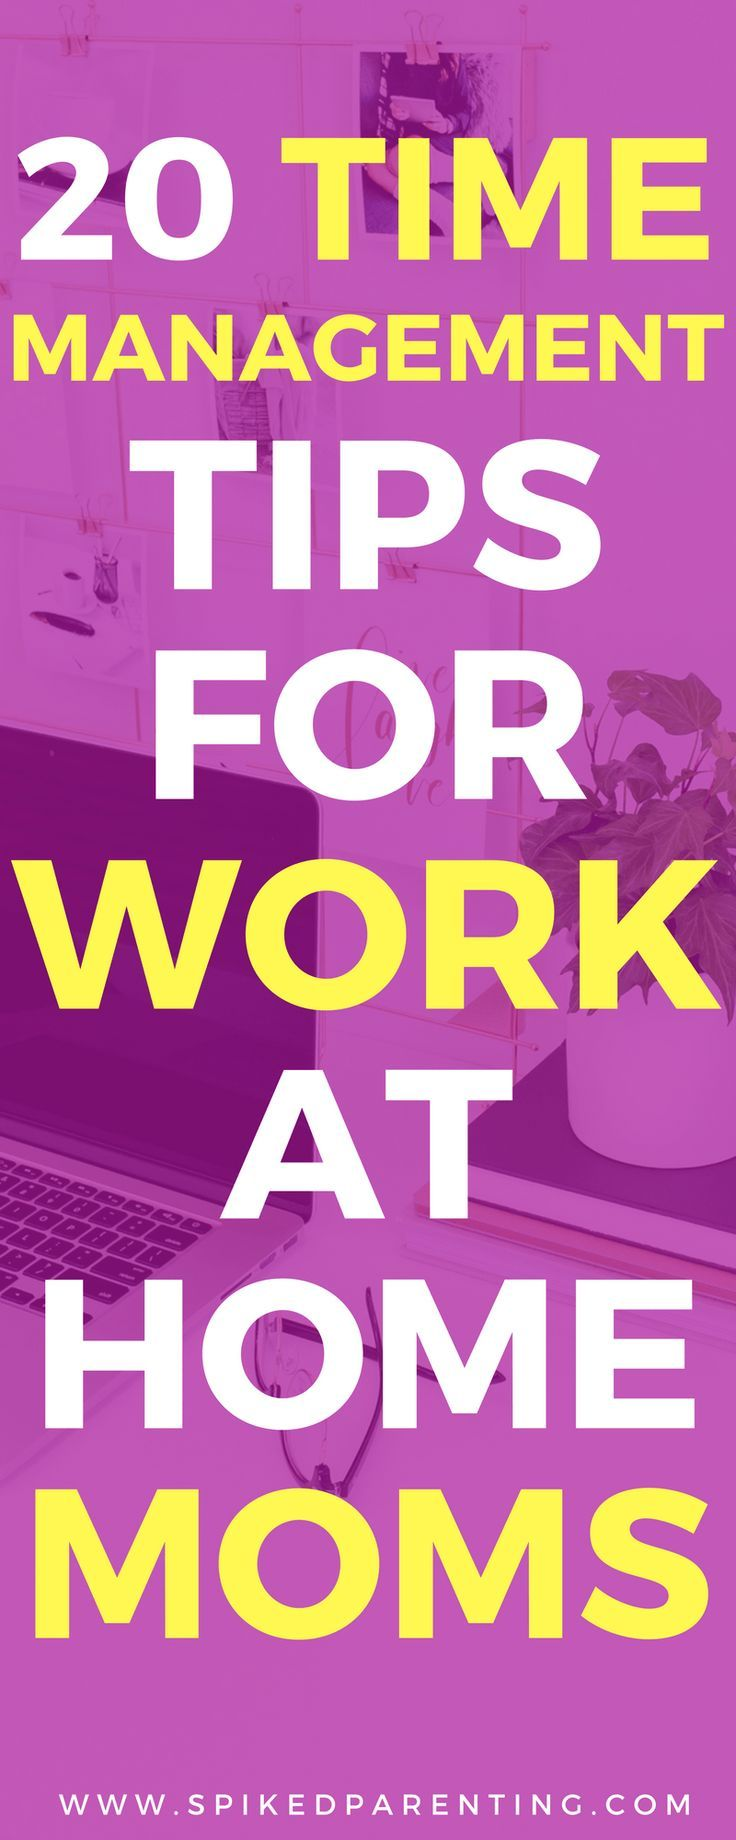 Are you struggling as a work at home mama? Check out these 20 time management tips for work at home moms and start getting more done today! 20 Time Management Tips for Work At Home Moms | SpikedParenting #timemanagement #wahm #mompreneur #productivity